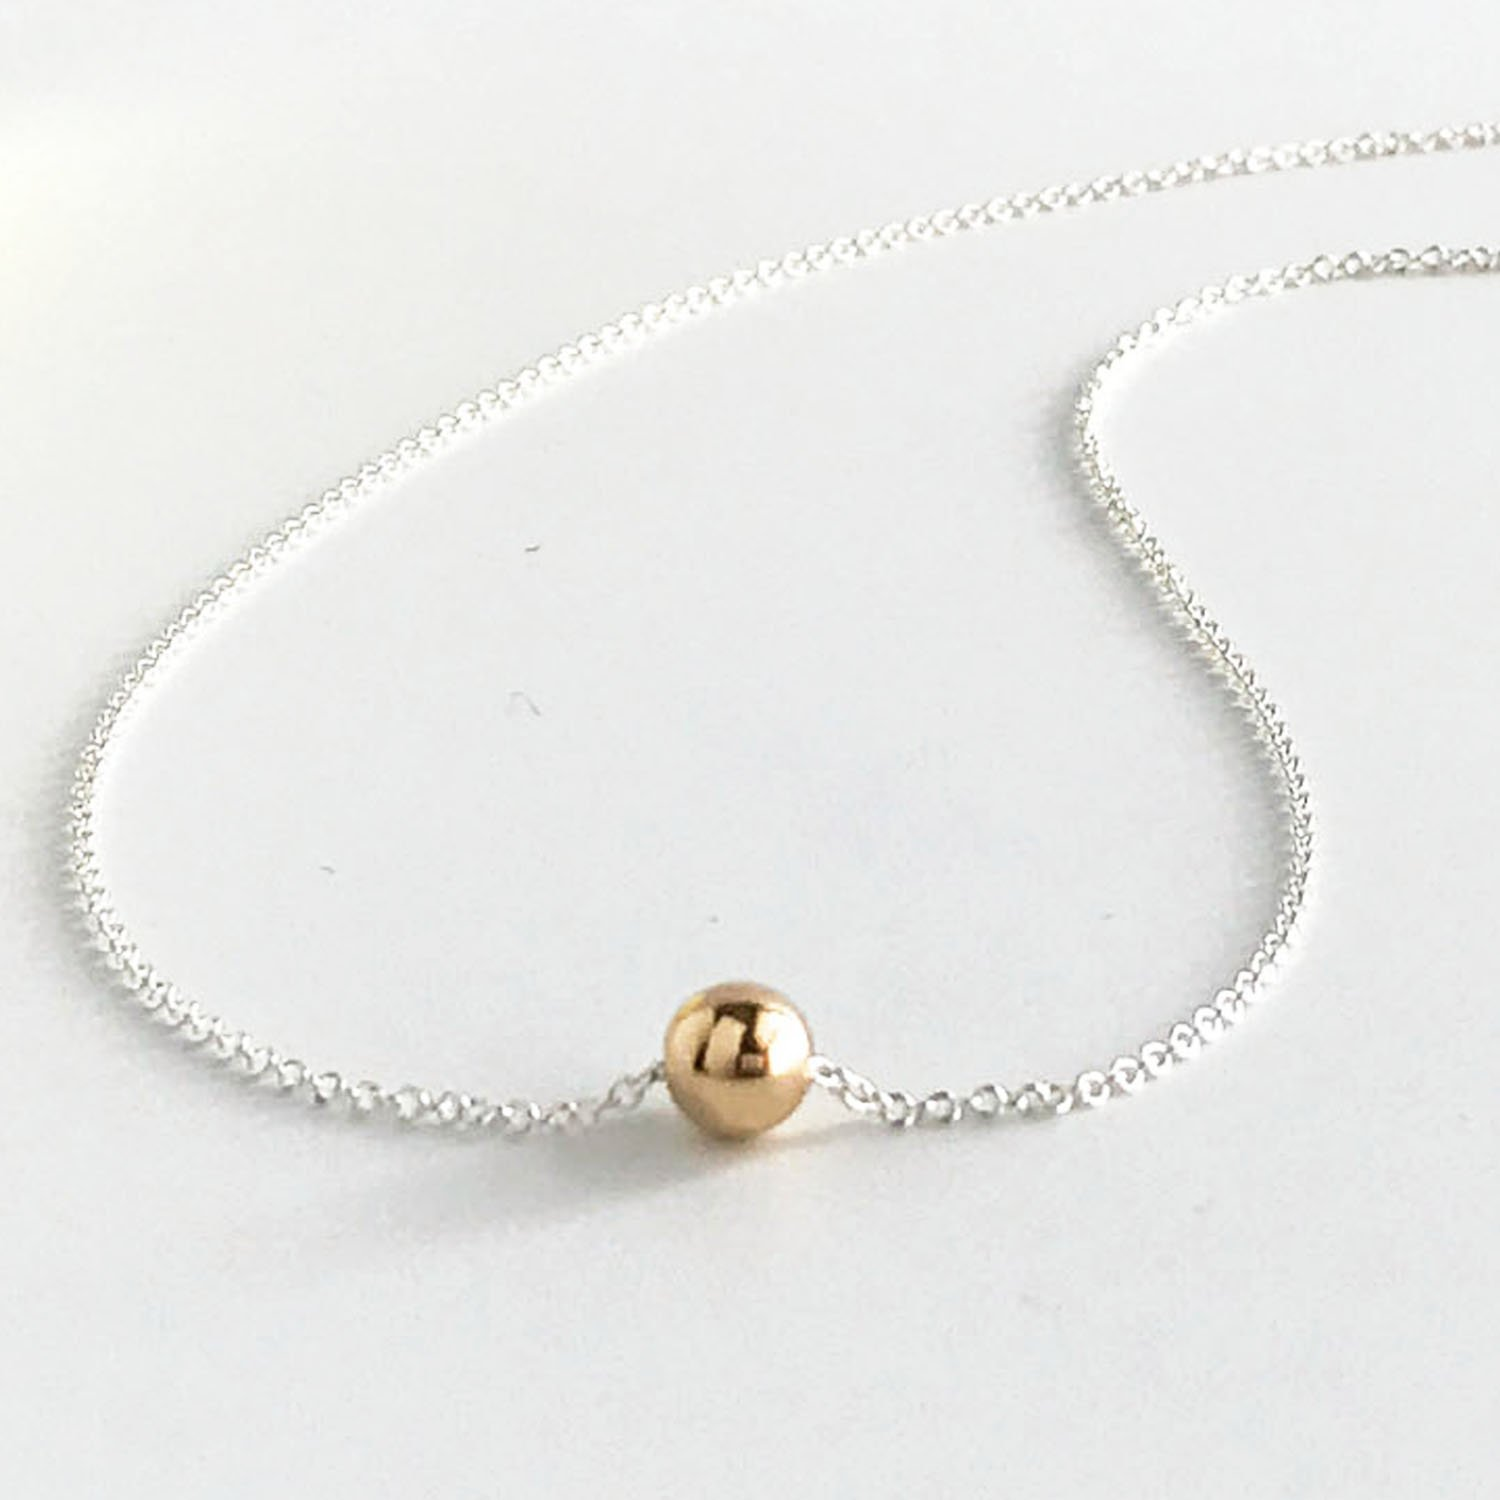 Silver and Gold Tiny Ball Necklace - Mixed Metal Choker